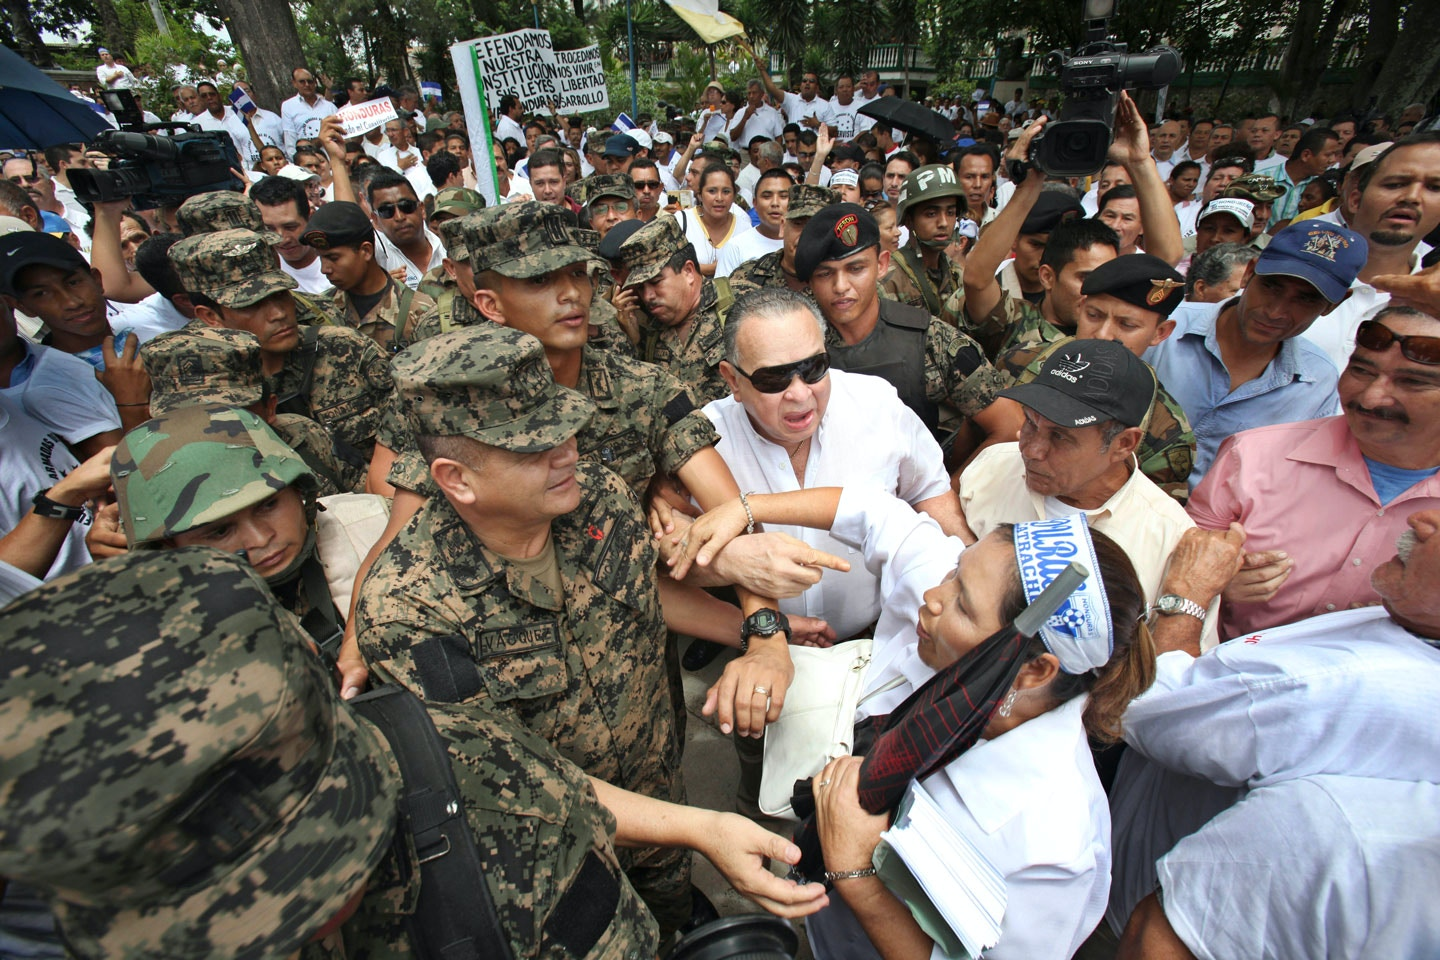 Gen. Romeo Vasquez, center left, head of the Joint Chiefs of Staff fired by Honduras' President Manuel Zelaya late Wednesday for refusing to support a referendum, is greeted by demonstrators during a protest in Tegucigalpa, Friday, June 26, 2009. With backing from Fidel Castro and Hugo Chavez, President Zelaya pushed ahead Friday with a referendum on revamping the constitution, risking his rule in a standoff against Congress, the Supreme Court and the military.(AP Photo/Esteban Felix)